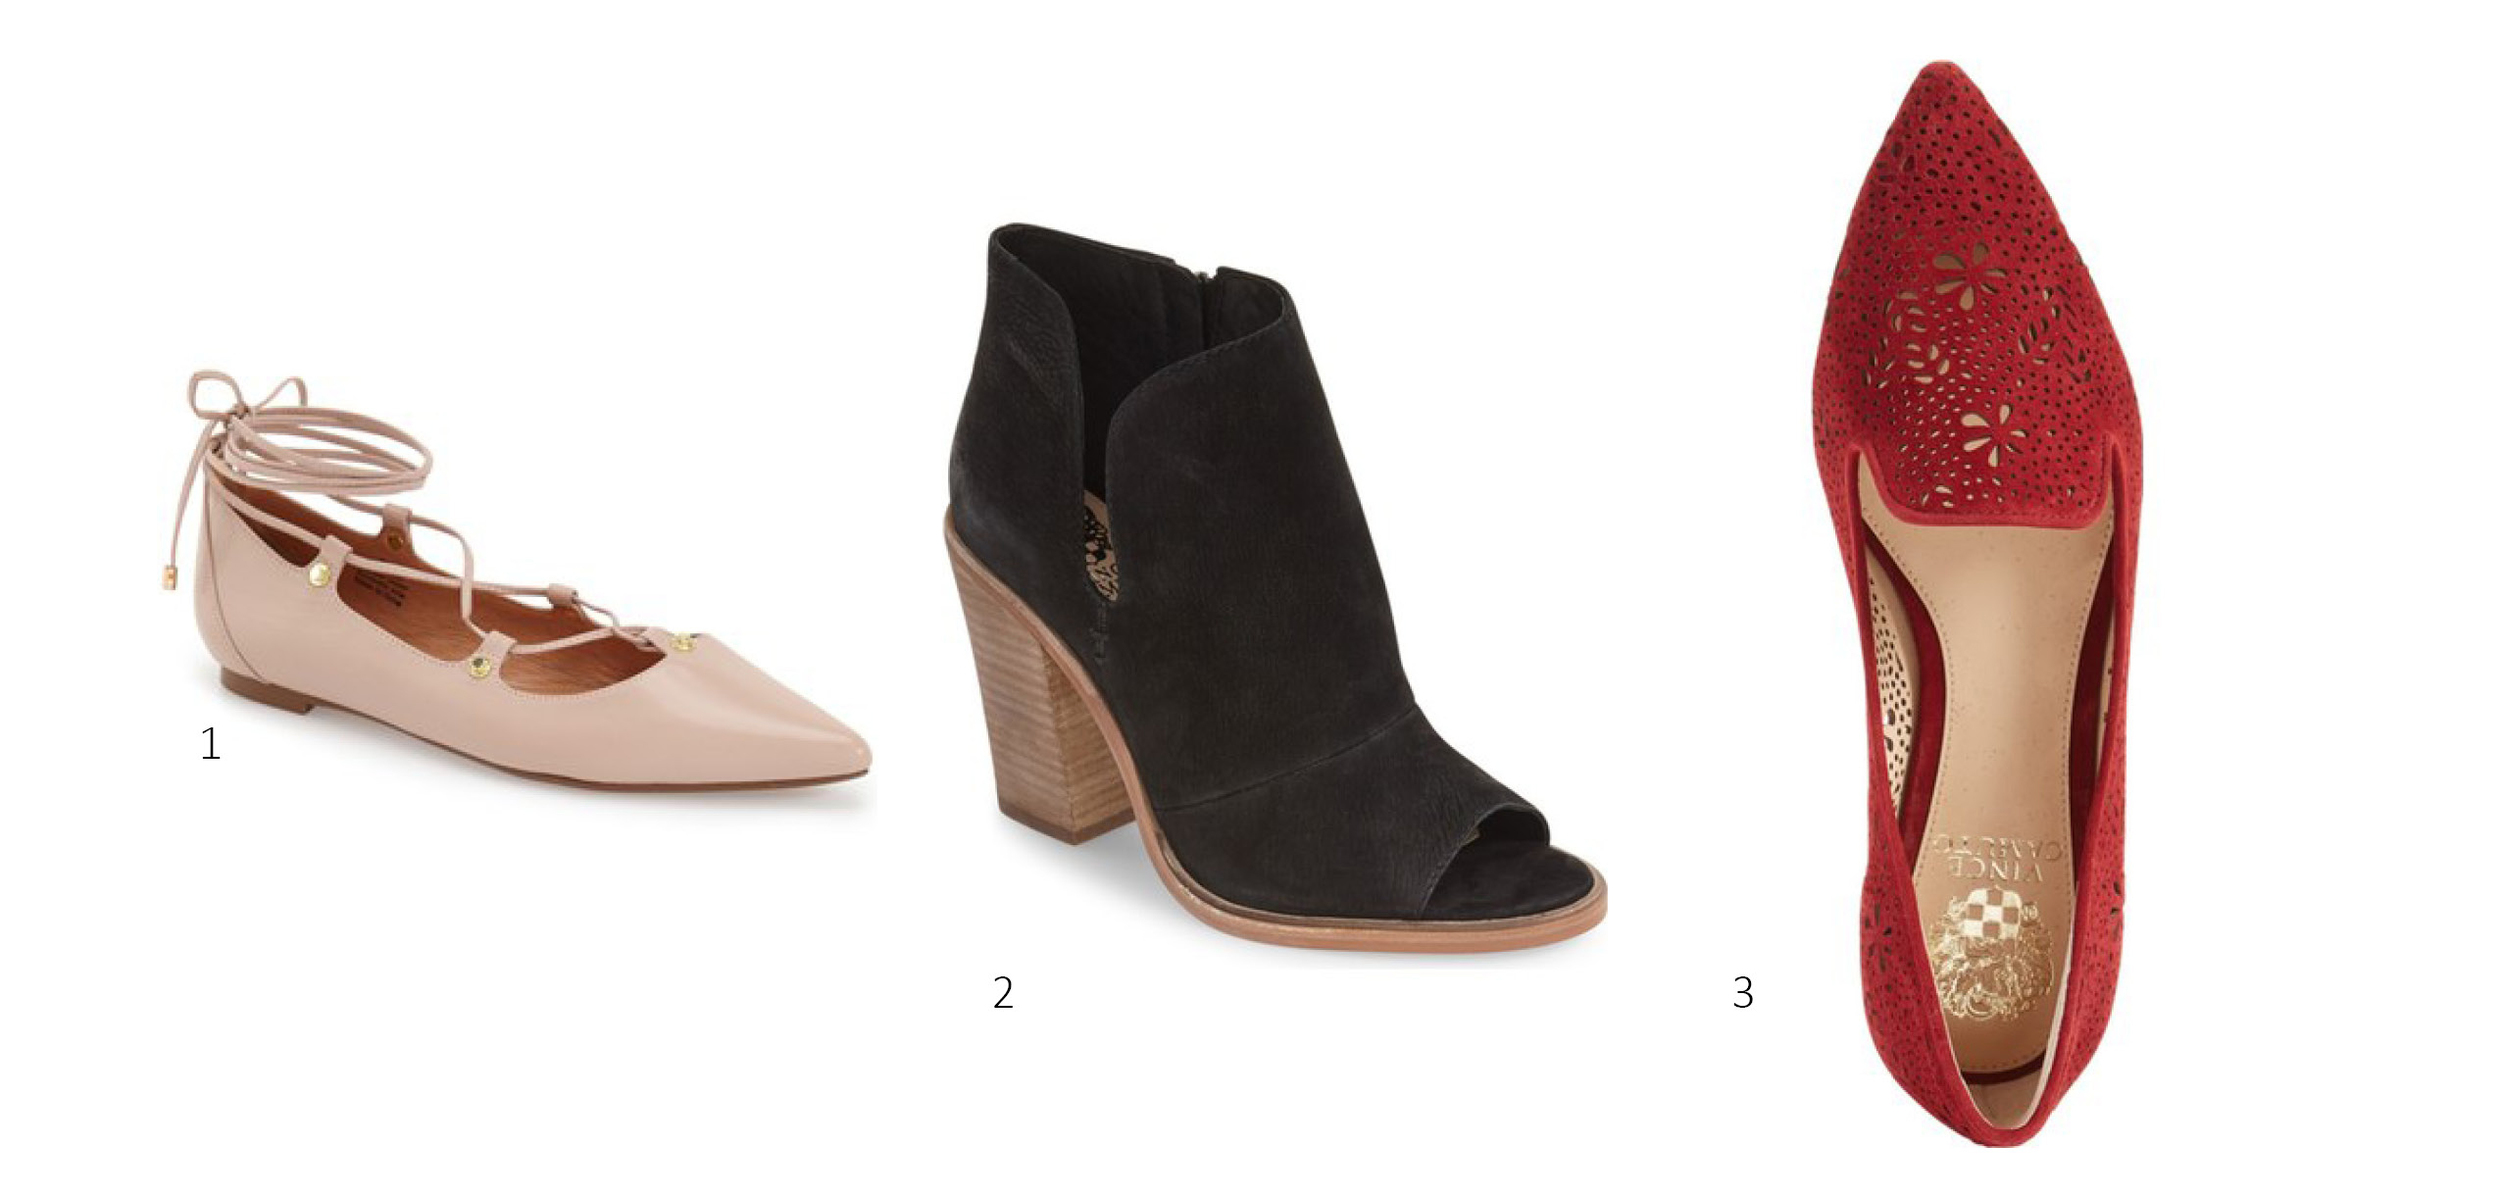 1. Halogen 'Owen' Pointy Toe Ghillie Flat $59.90 ; 2.  Vince Camuto 'Katleen' Peep Toe Bootie $99 ; 3. Vince Camuto 'Earina' Perforated Flat $69